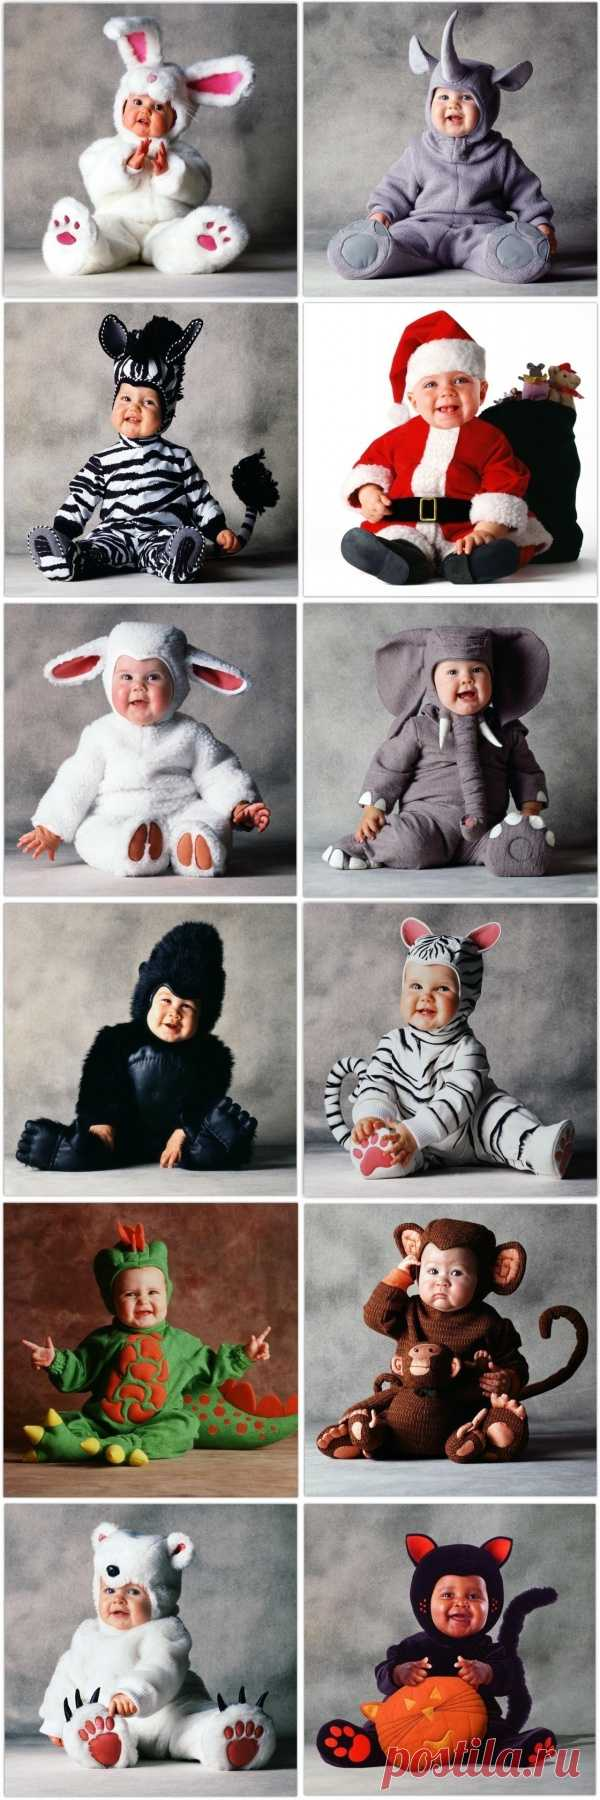 Ideas of carnival costumes for babies